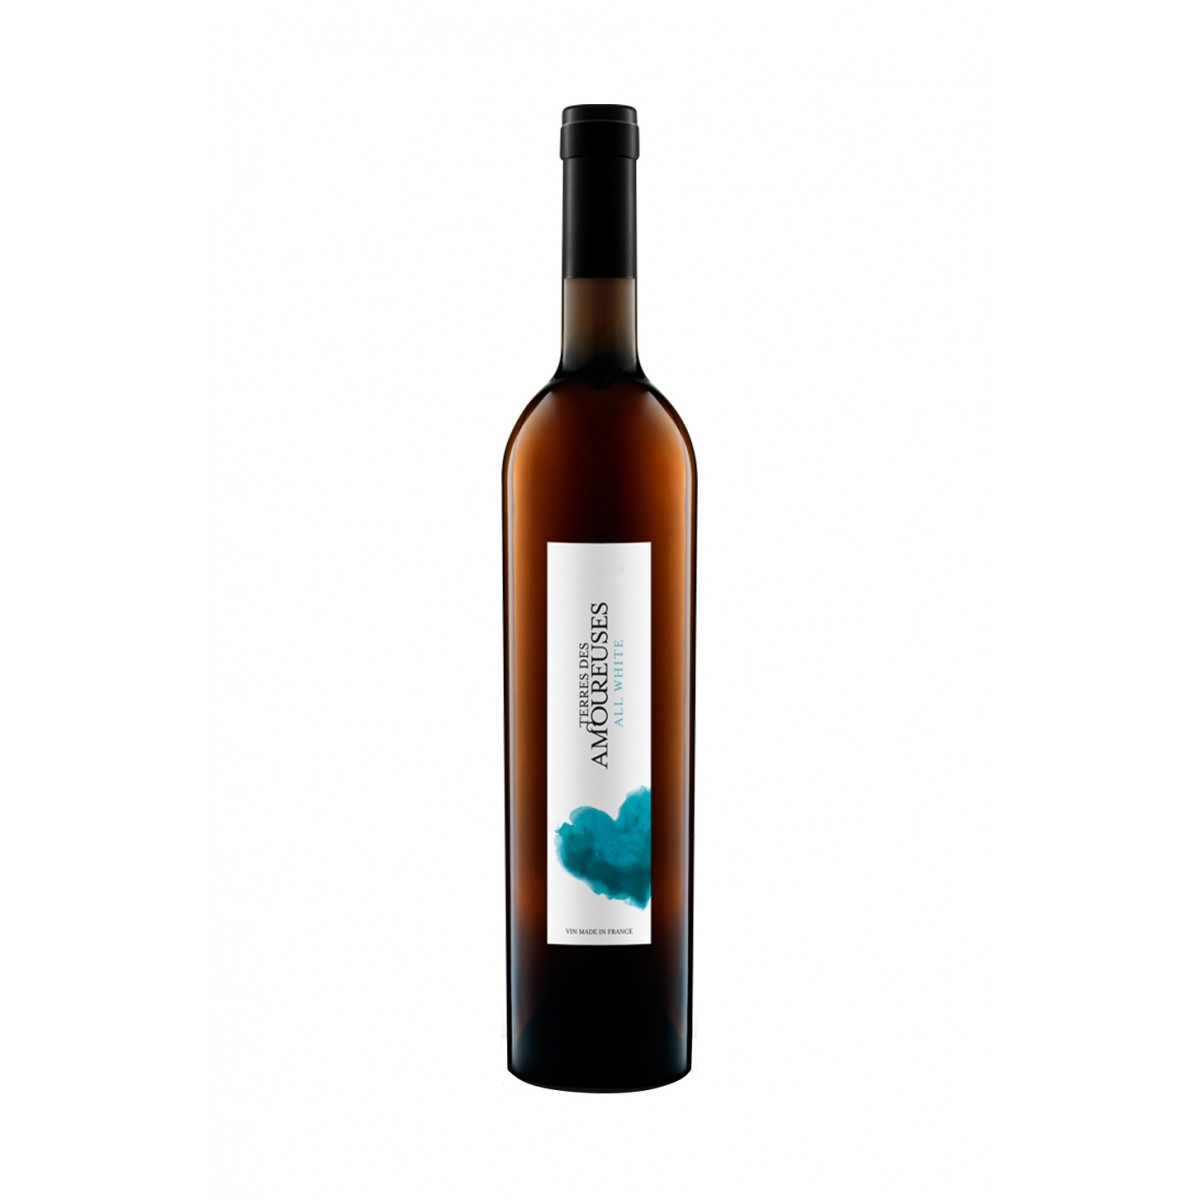 All White 2015 - Chateau Les Amoureuses